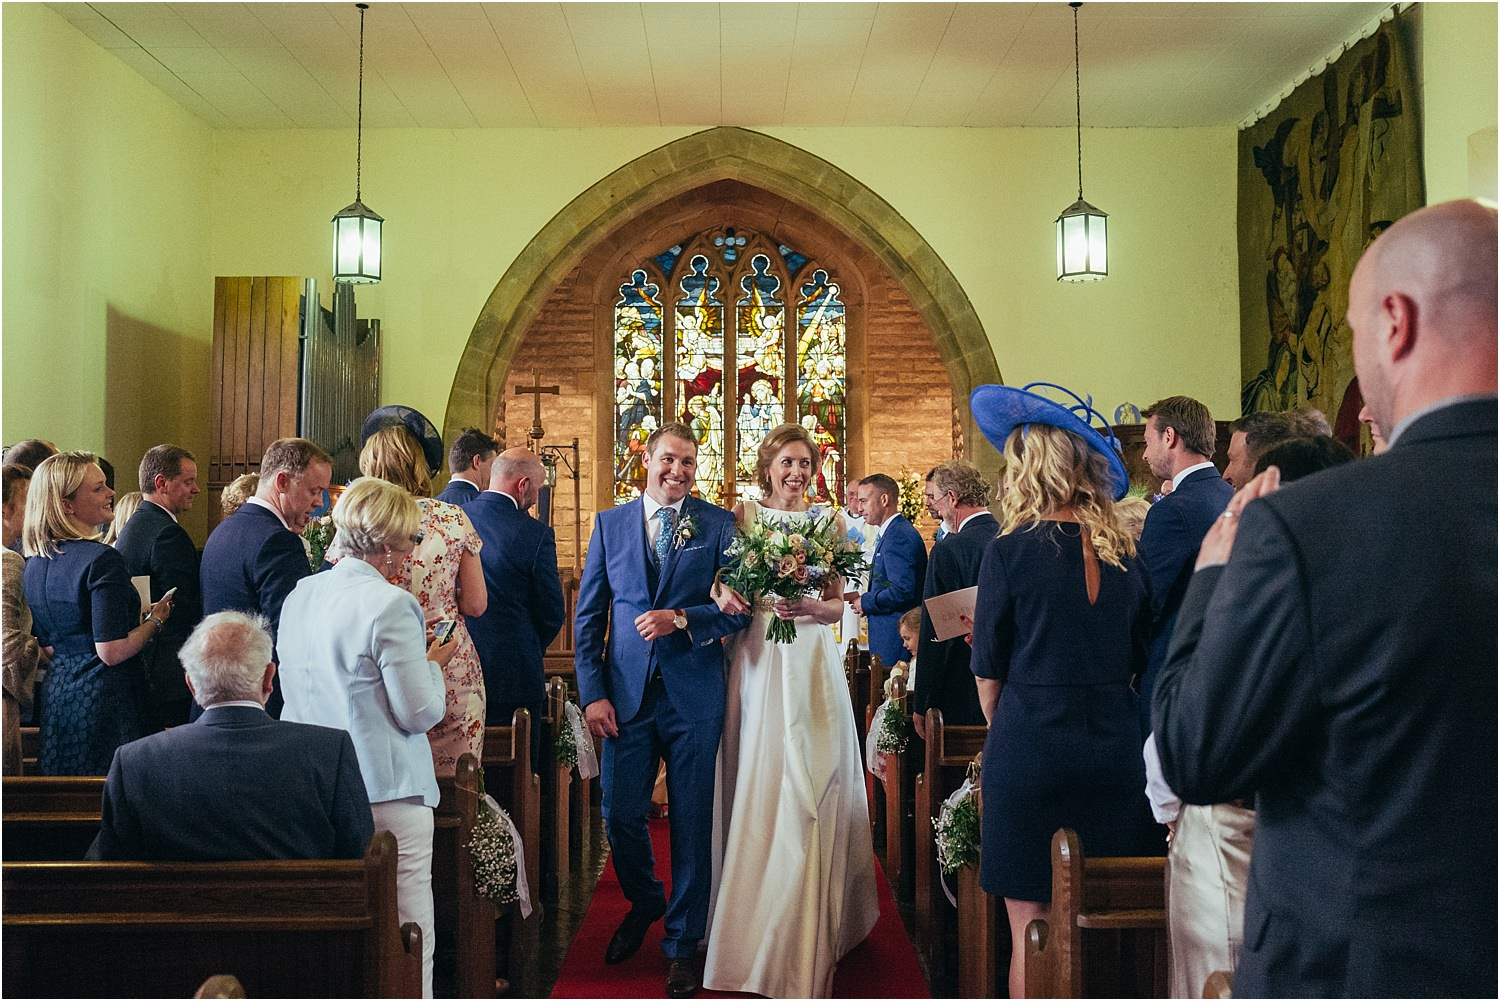 Bride and groom enjoying the walk down the aisle after their Lancashire wedding